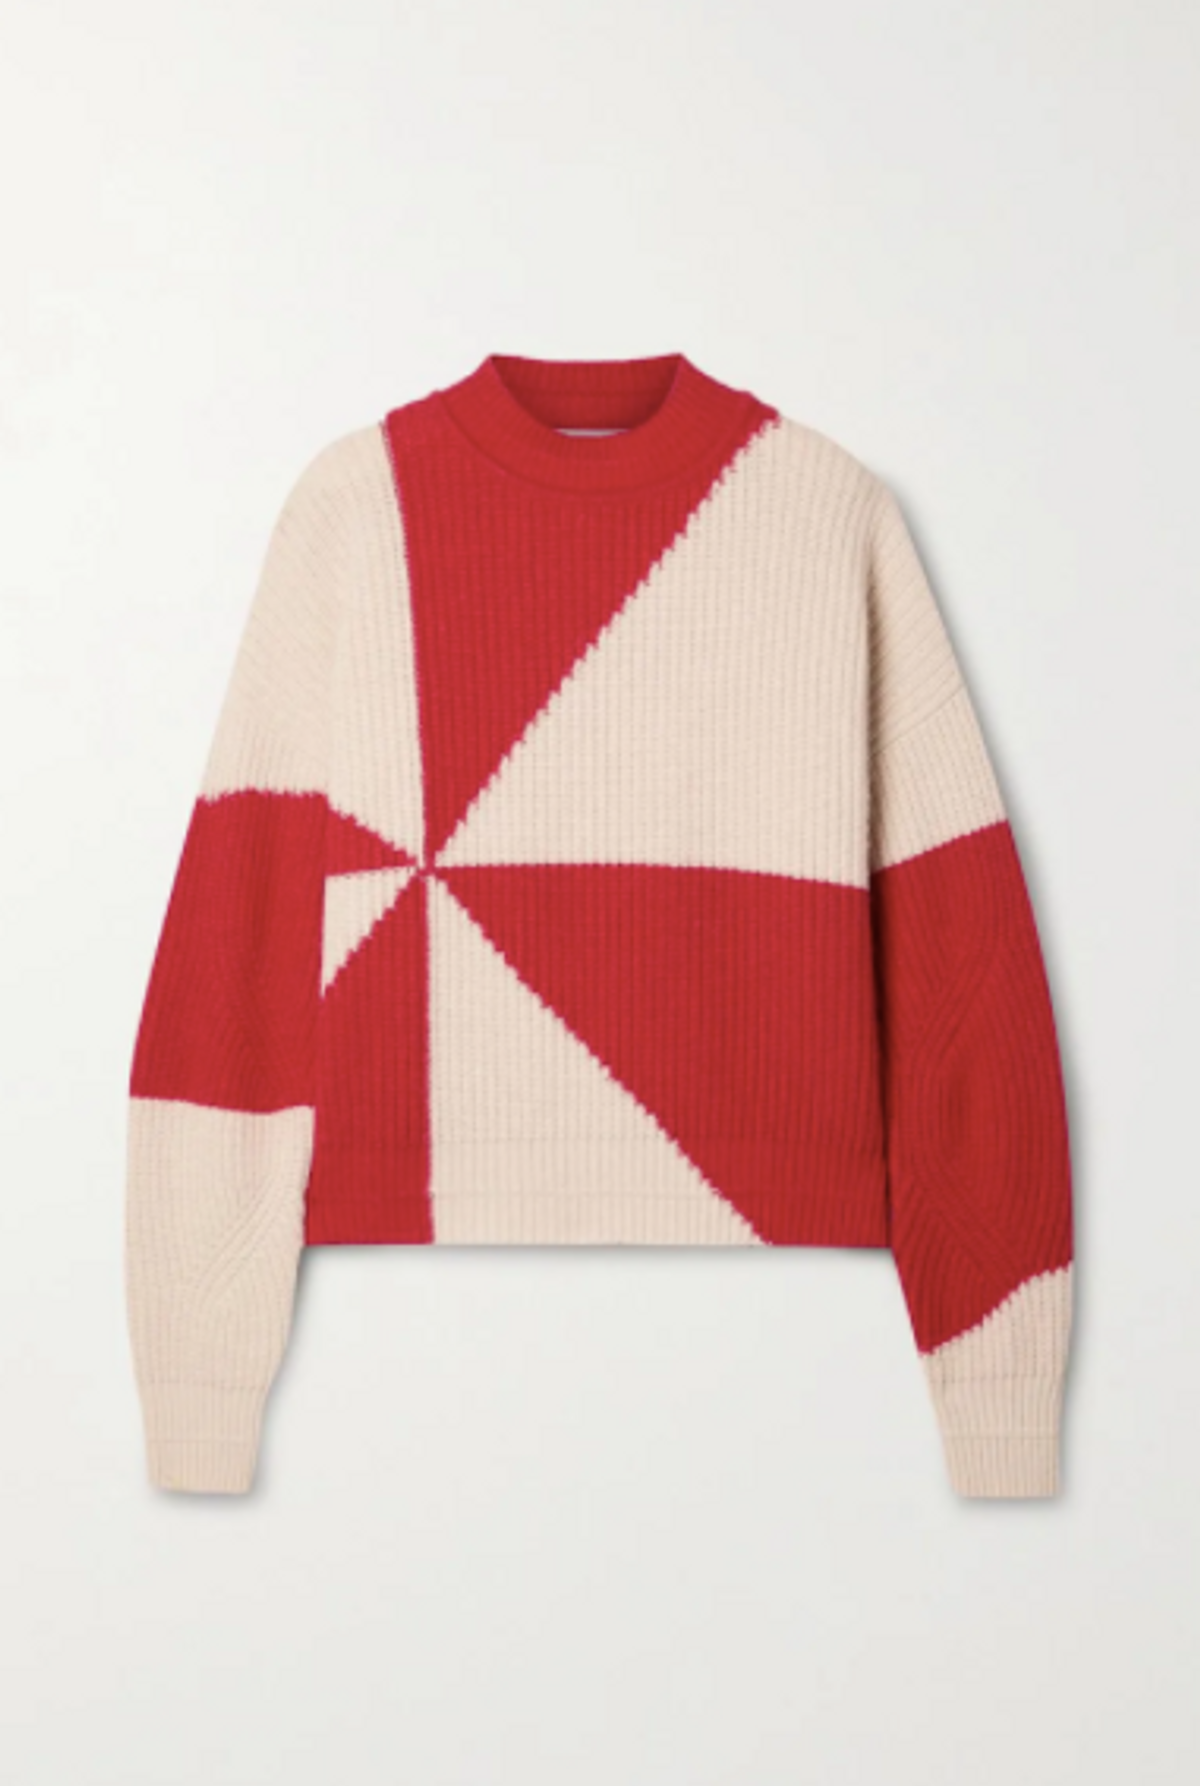 + NET SUSTAIN Jules Two-Tone Recycled Ribbed Knit Sweater